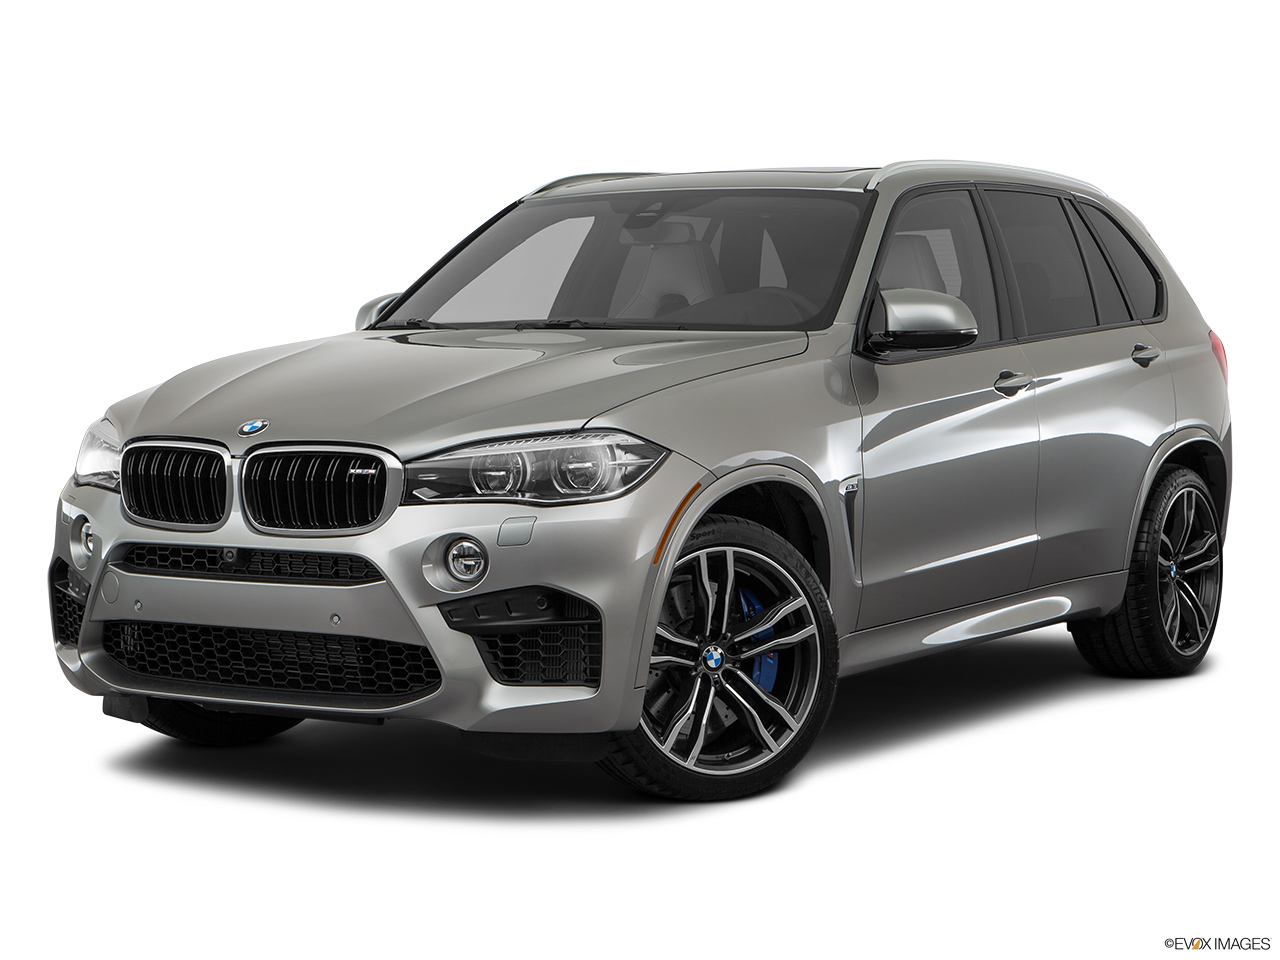 Car Pictures List For Bmw X5 M 2018 4 4t Xdrive Uae